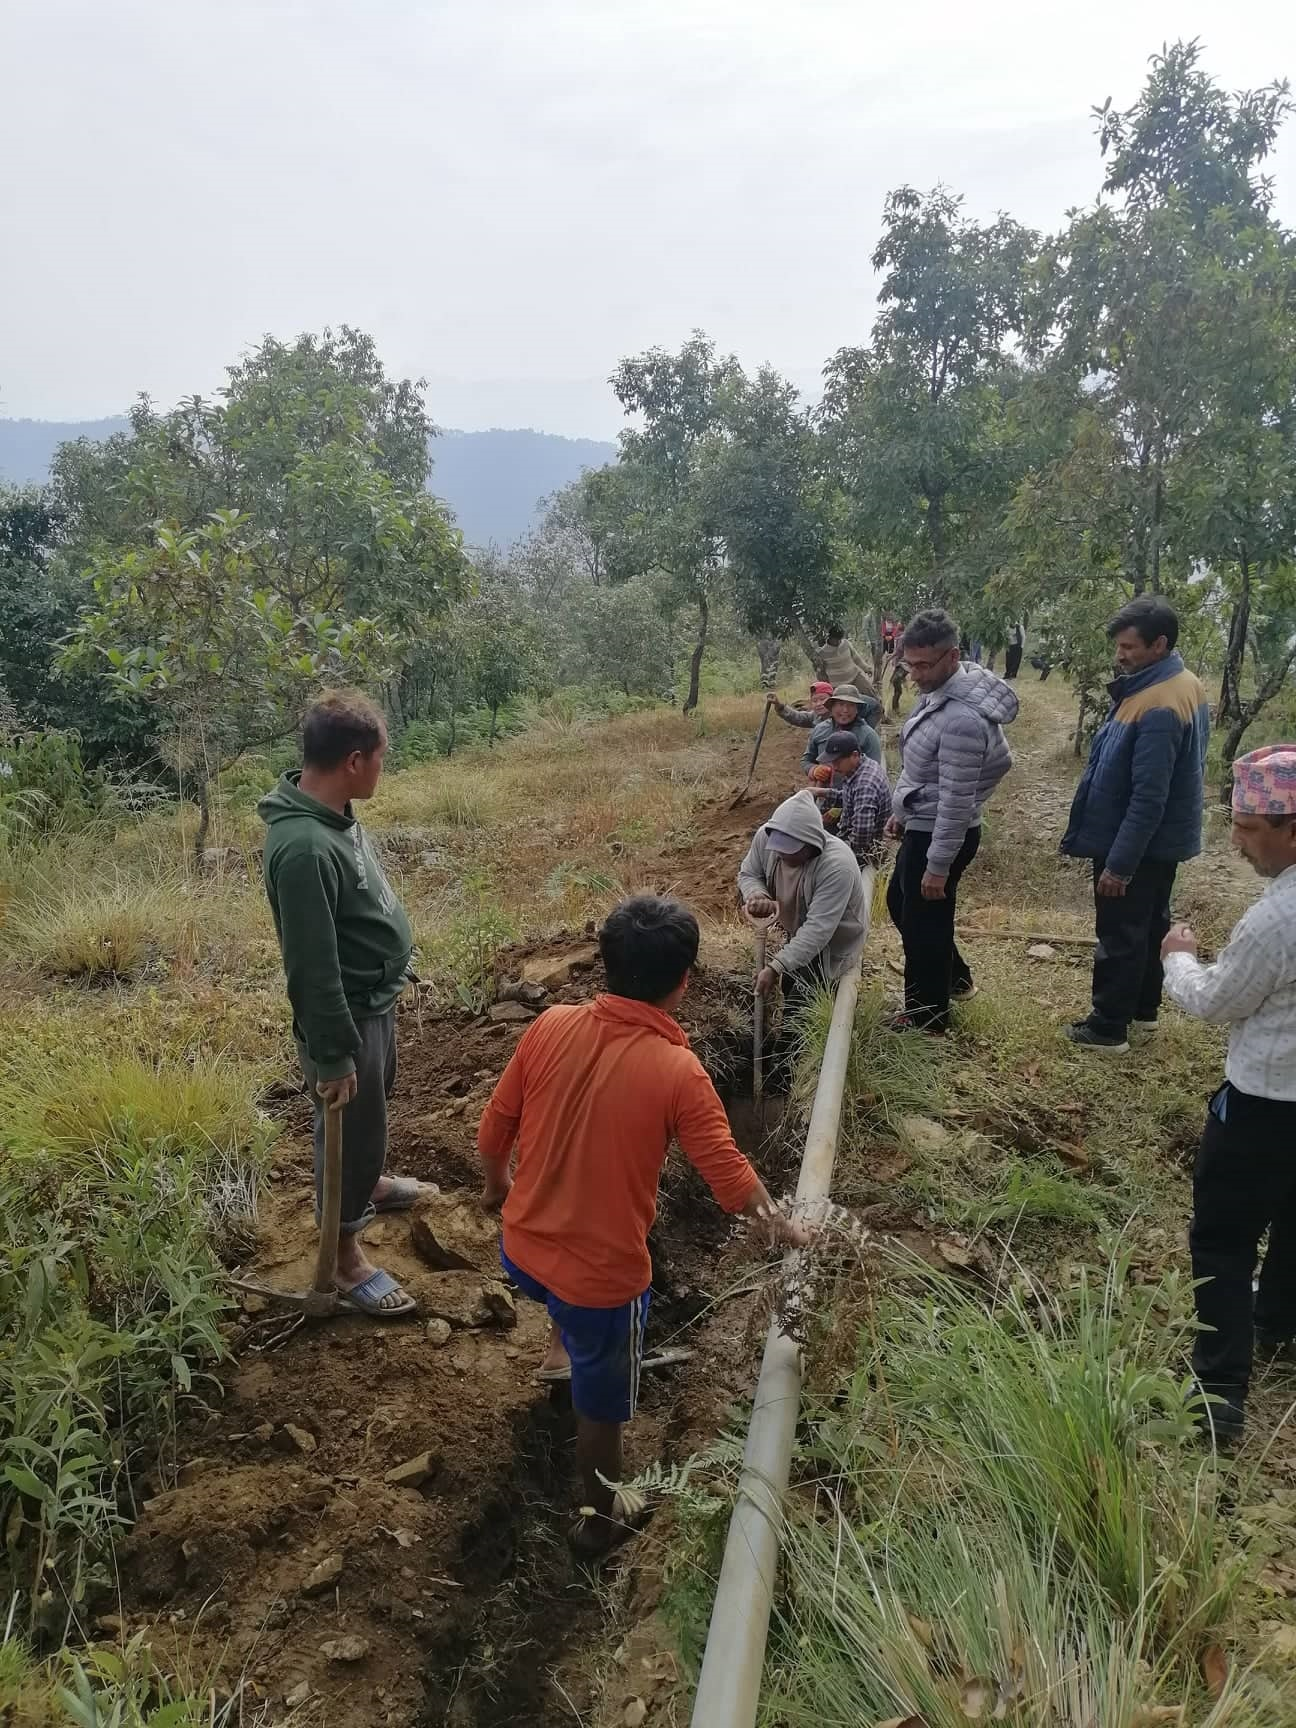 The villagers from Ramkot taking part in pipeline works as labor contribution